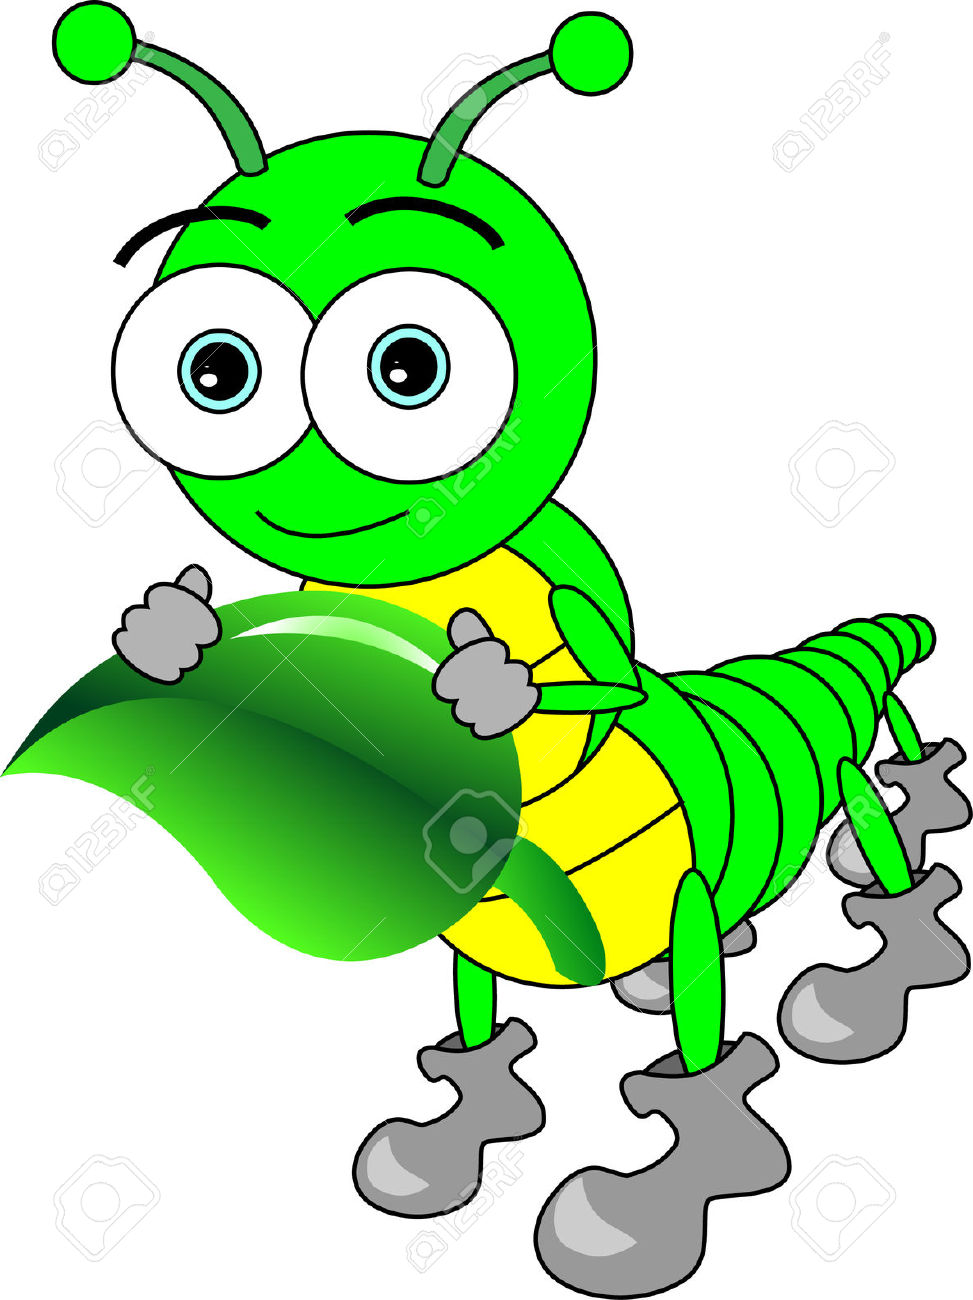 Free clipartmansion com centipede. Caterpillar clipart green worm